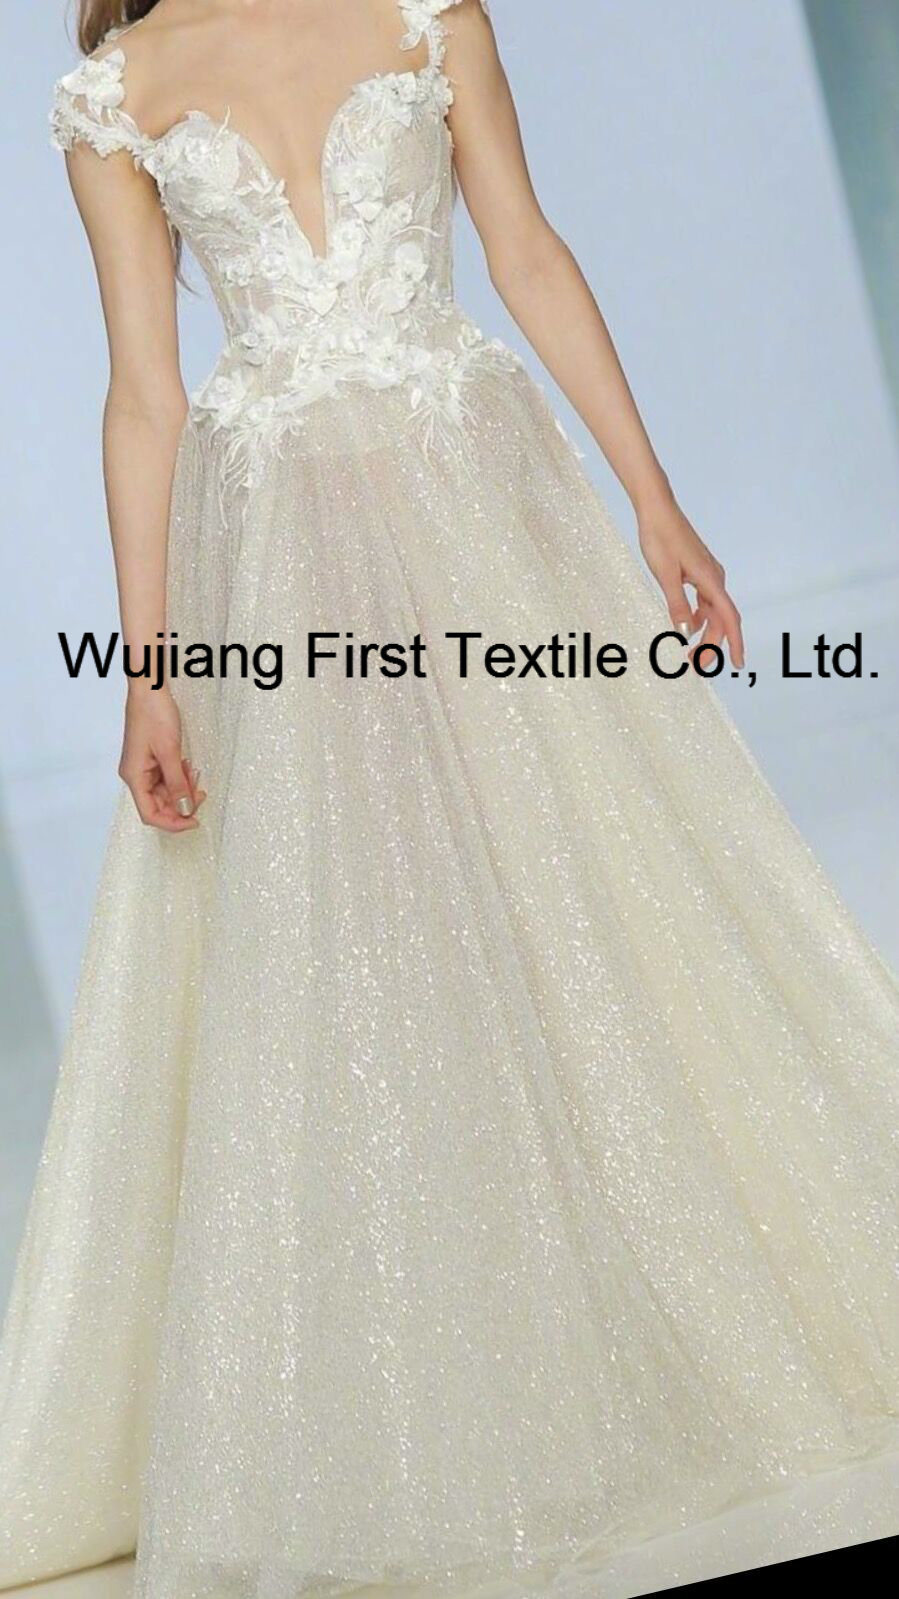 China Organza Fabric for Wedding Bridal Dress - China Silk Lurex ...